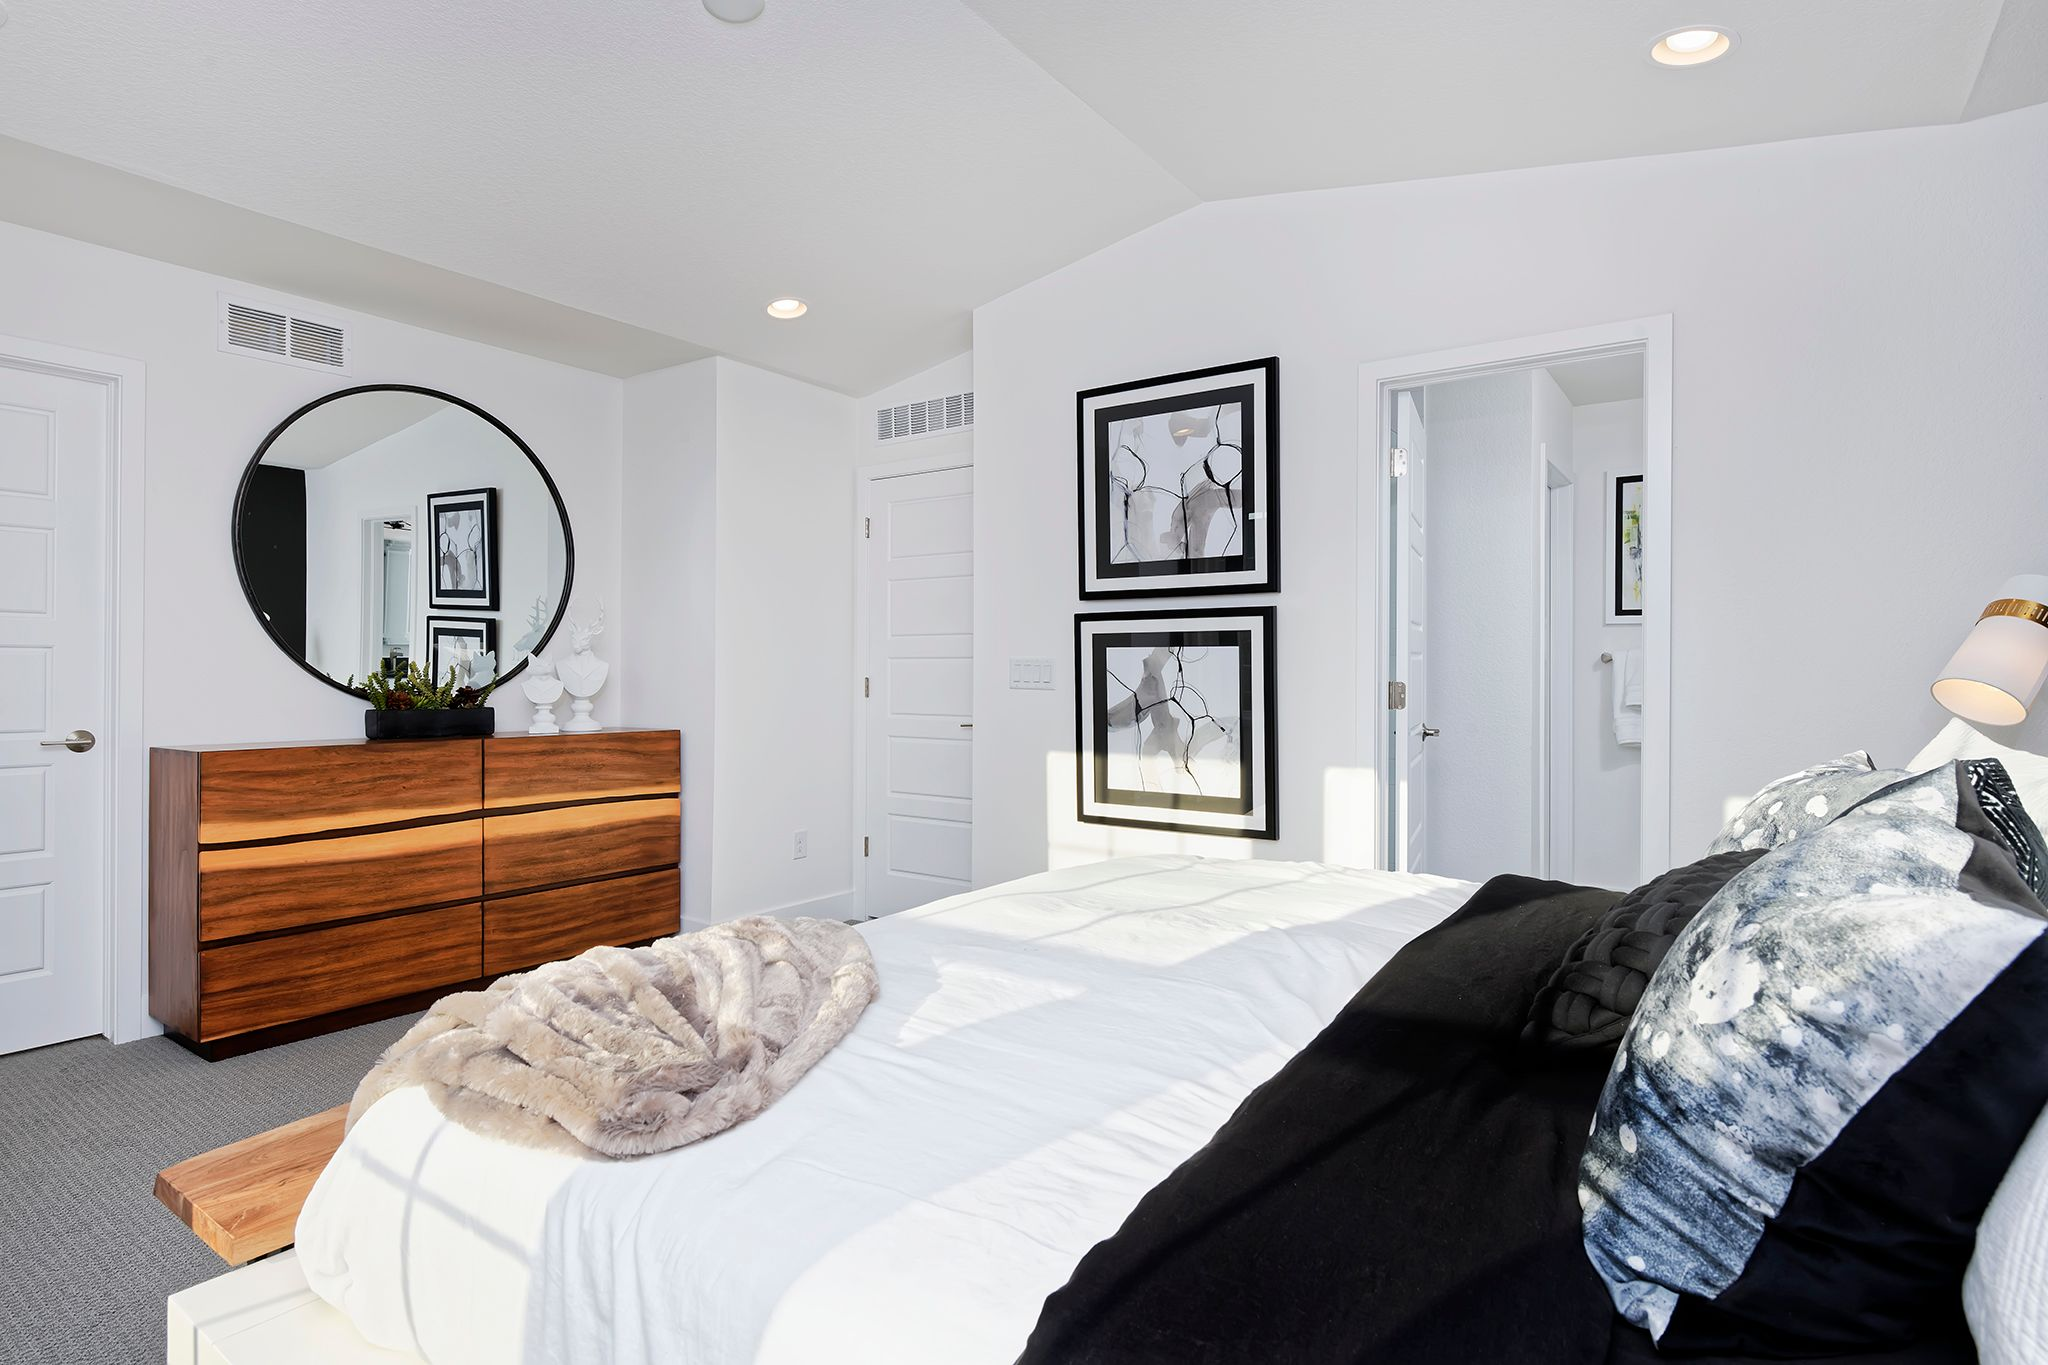 Bedroom featured in the Marquee By Thrive Home Builders in Denver, CO